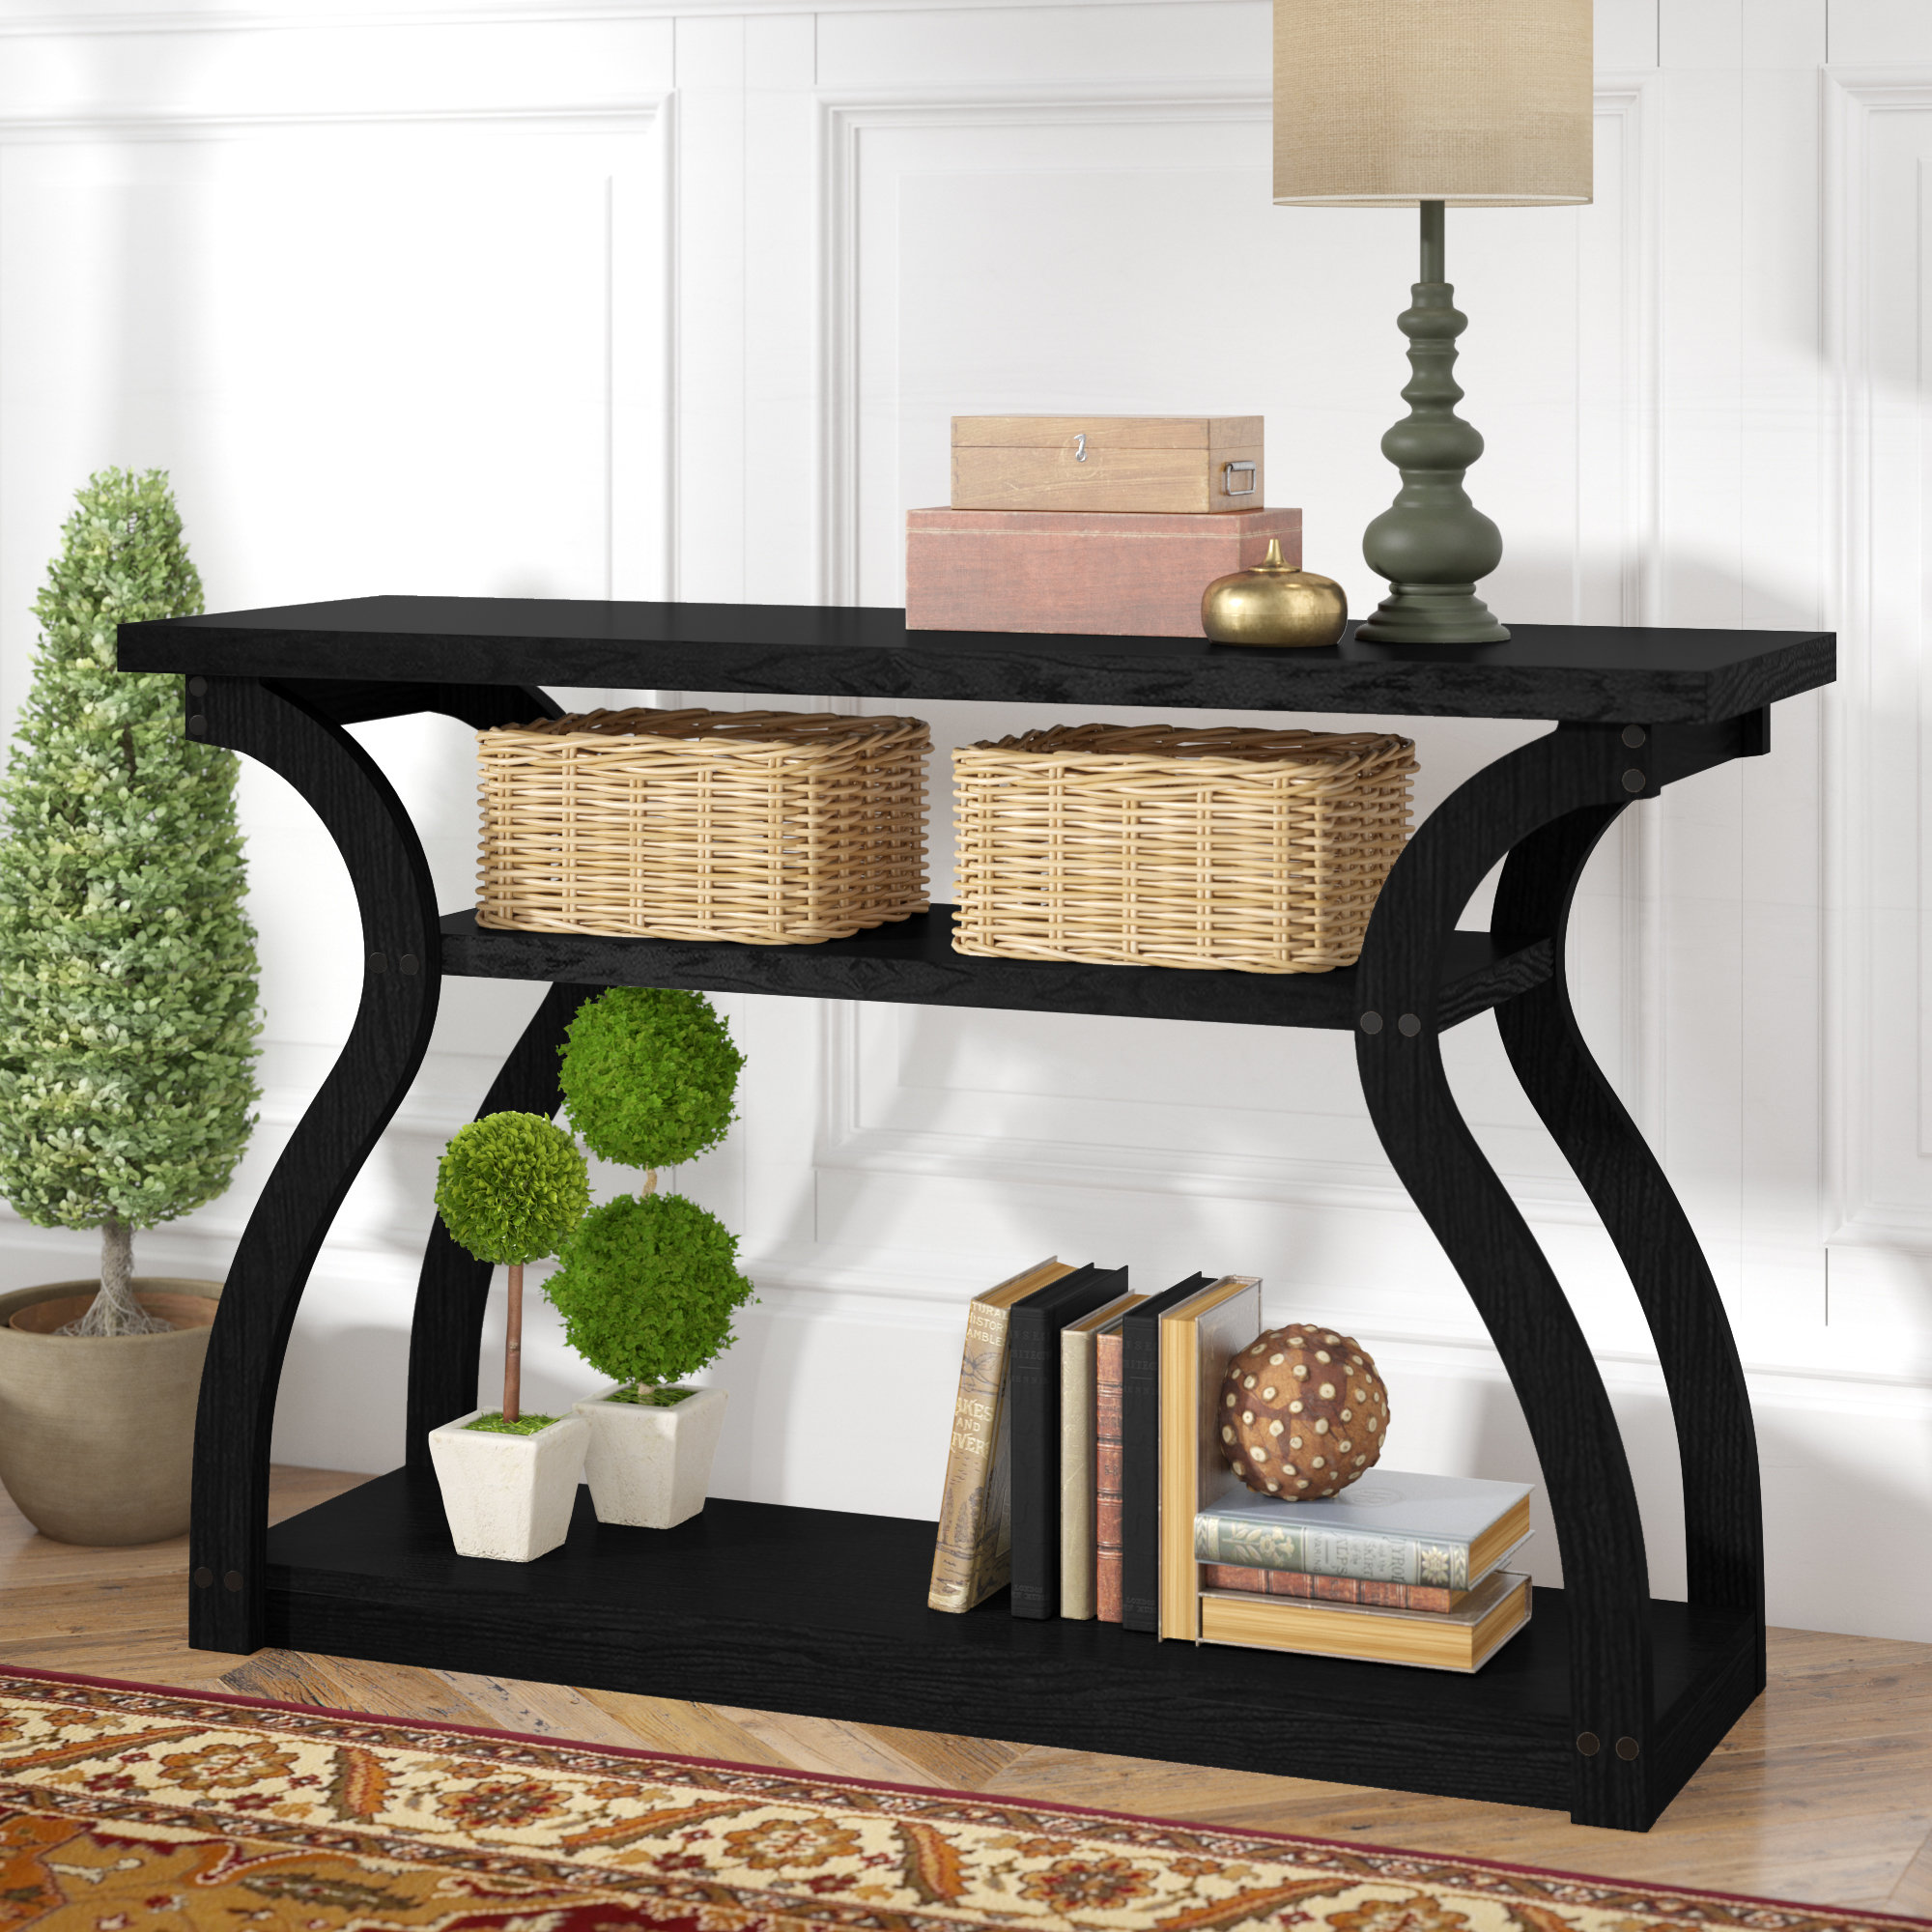 good looking farmhouse console tables table style hall hillside hafley hallway mirrored white kirklands outdoor black small gold amusi ideas hygena decor darley plans argos owings